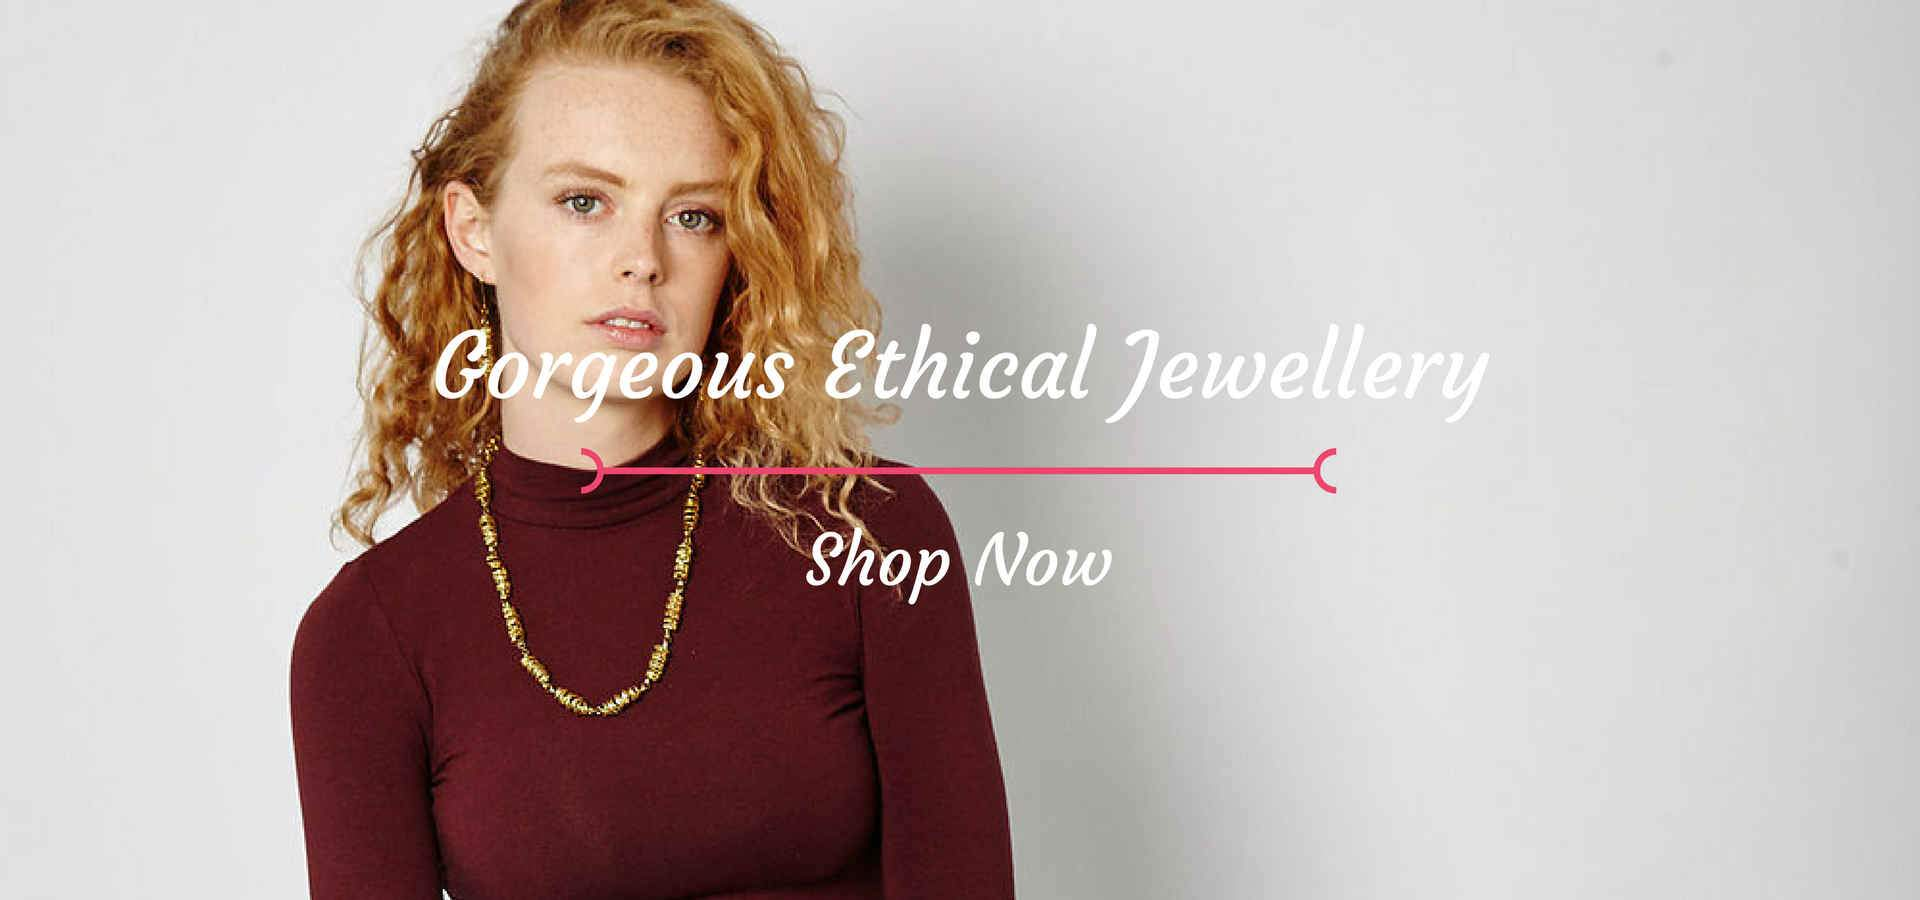 Shop Ethical Woman's Jewellery